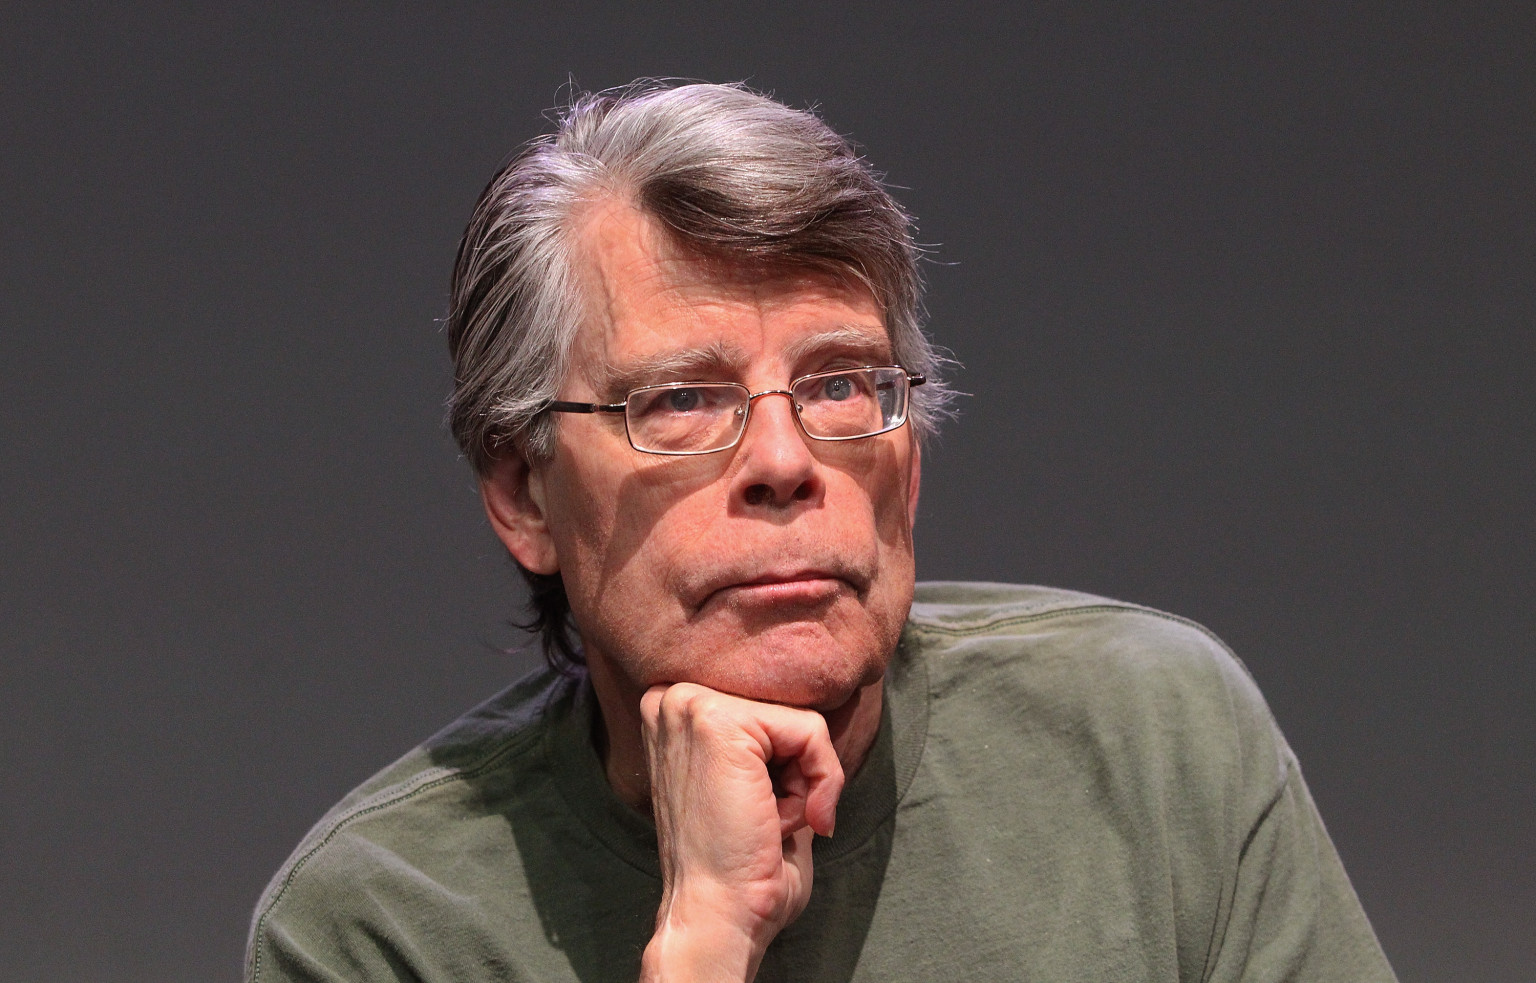 Stephen King earned a 45 million dollar salary, leaving the net worth at 400 million in 2017